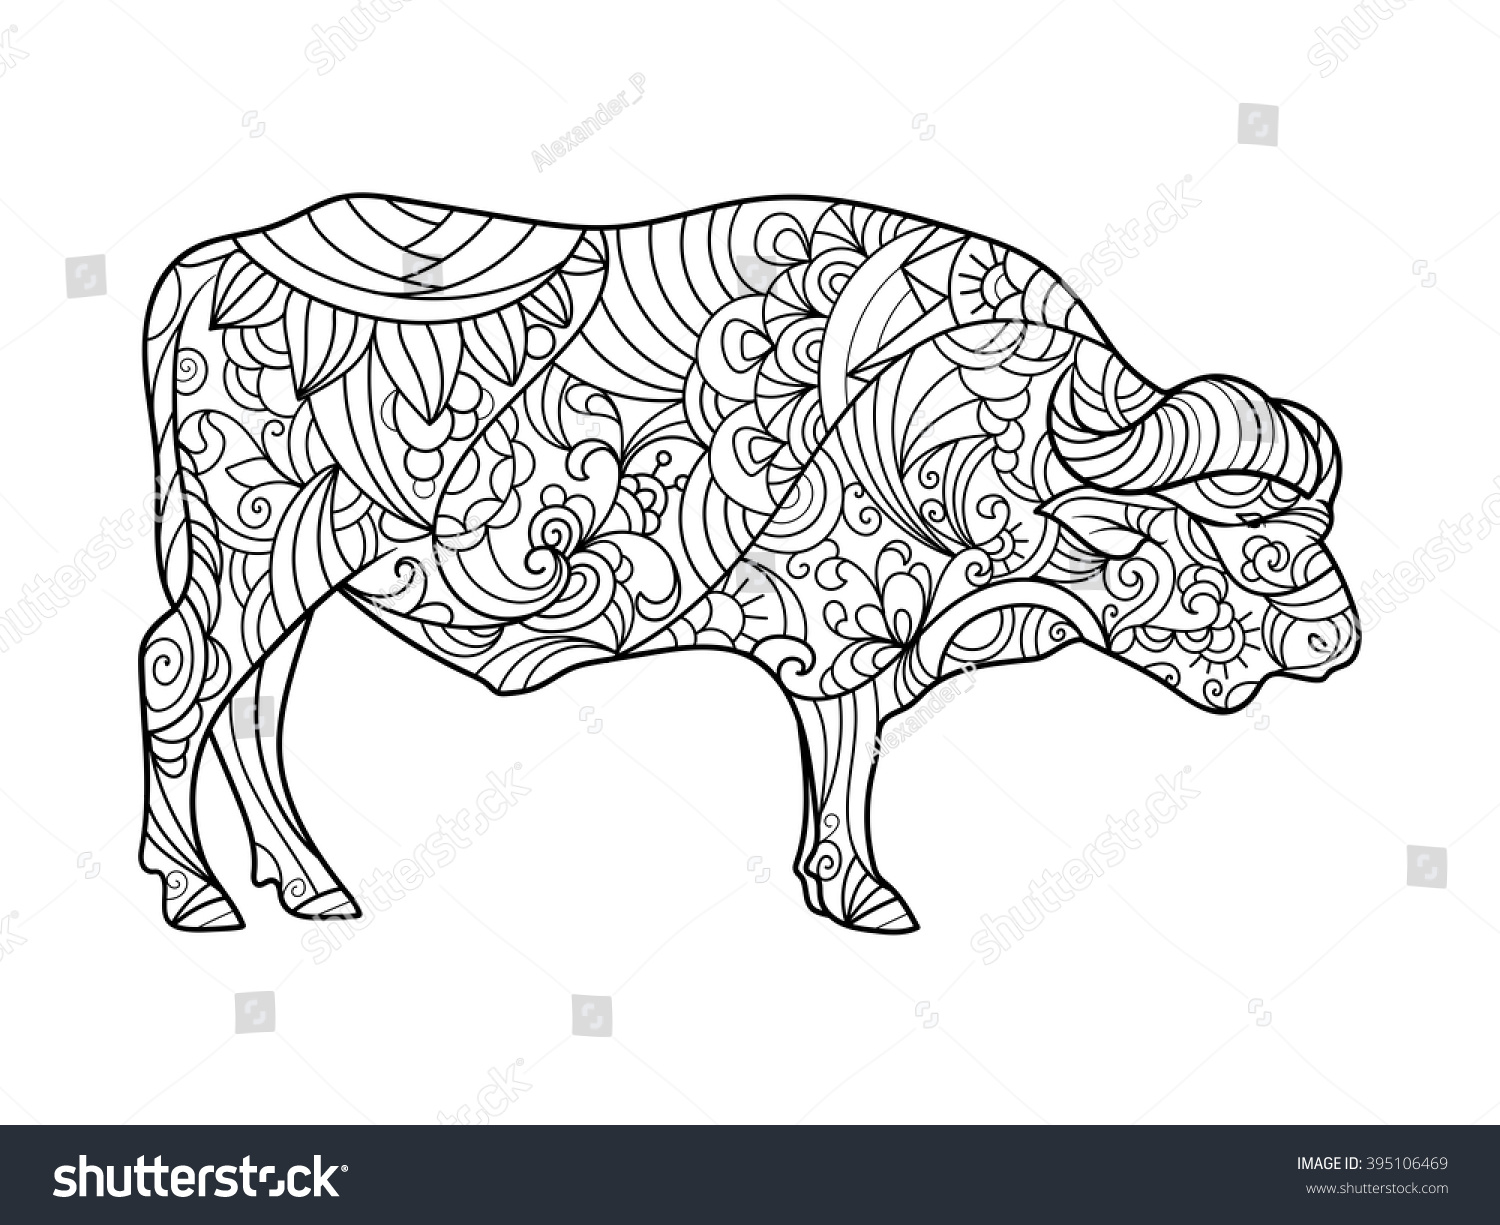 Buffalo Animal Coloring Book For Adults Vector Illustration Anti Stress Adult